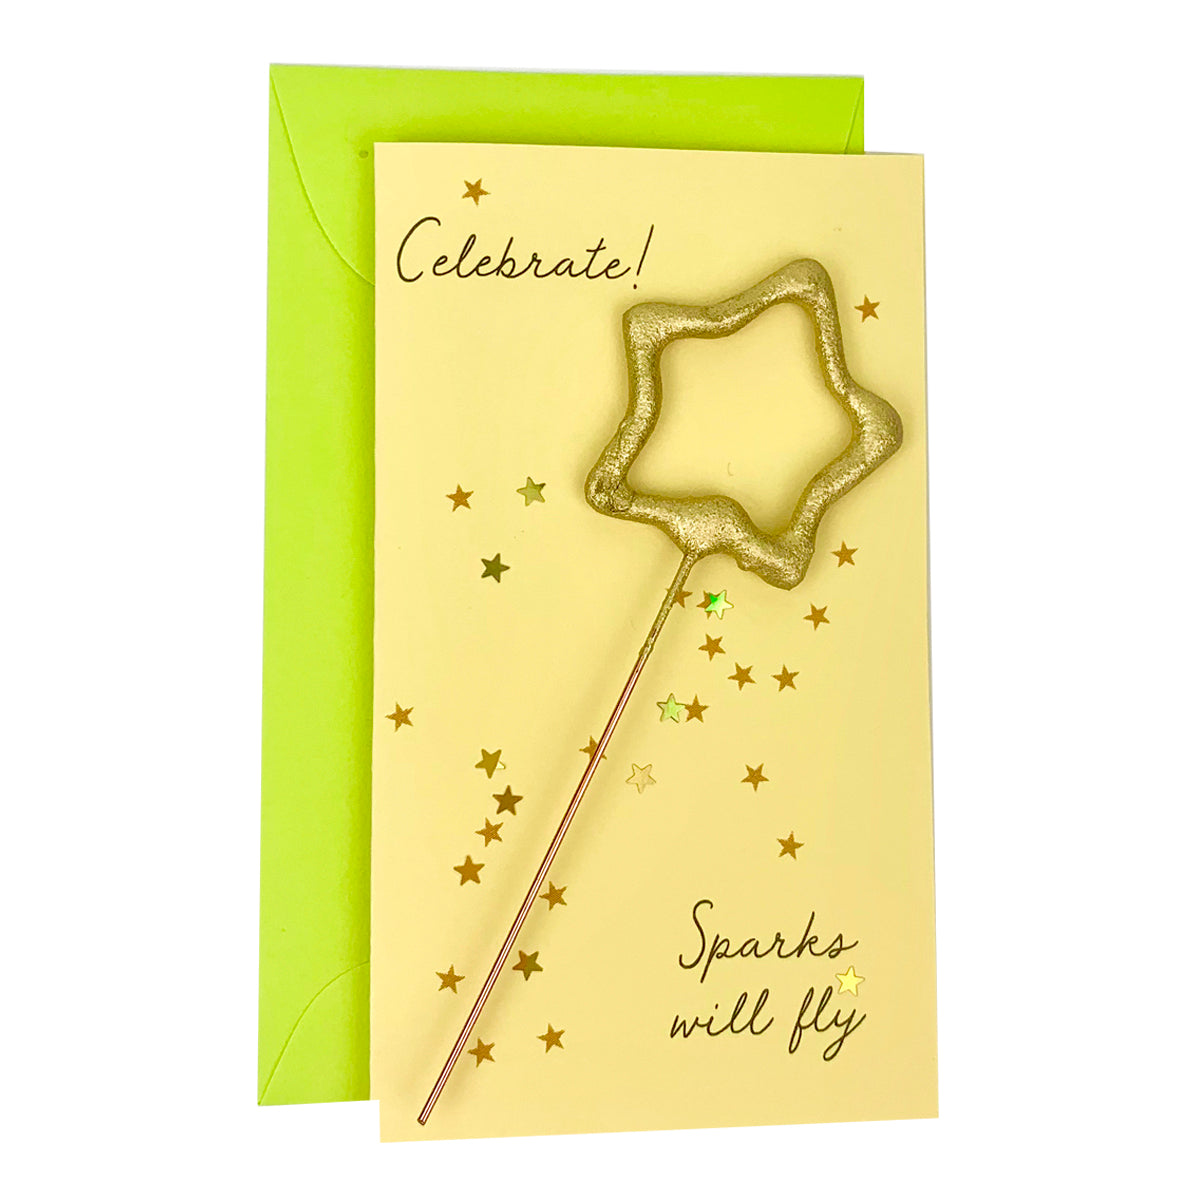 Confetti Sparkler Cards Celebrate!